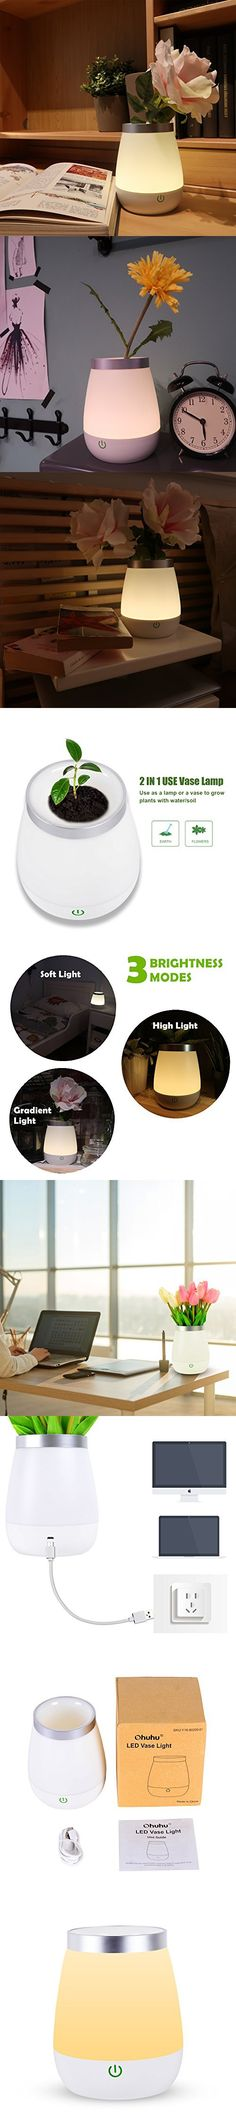 Ohuhu USB Rechargeable LED Vase Lamp Table Nursery Night Light For Bedroom Kids